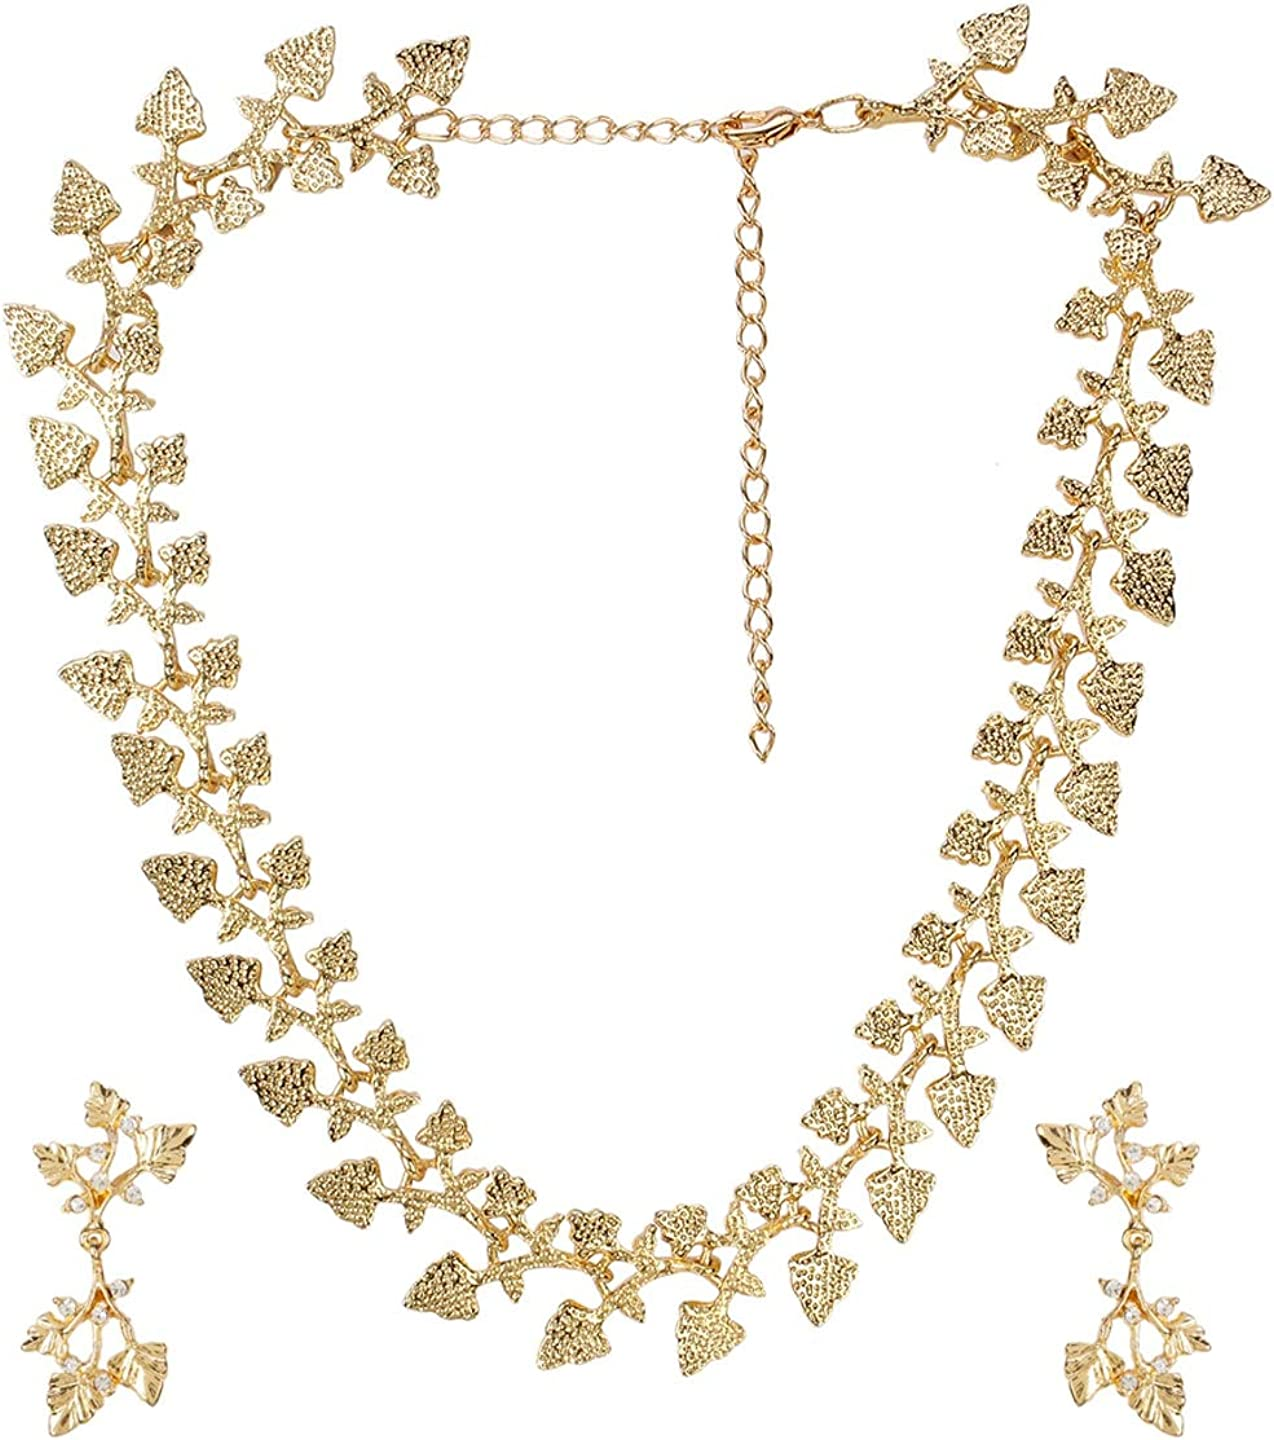 Crunchy Fashion Bollywood Style Gold Plated Party Wear Traditional Indian Crystal Jewelry Necklace and Earrings Set